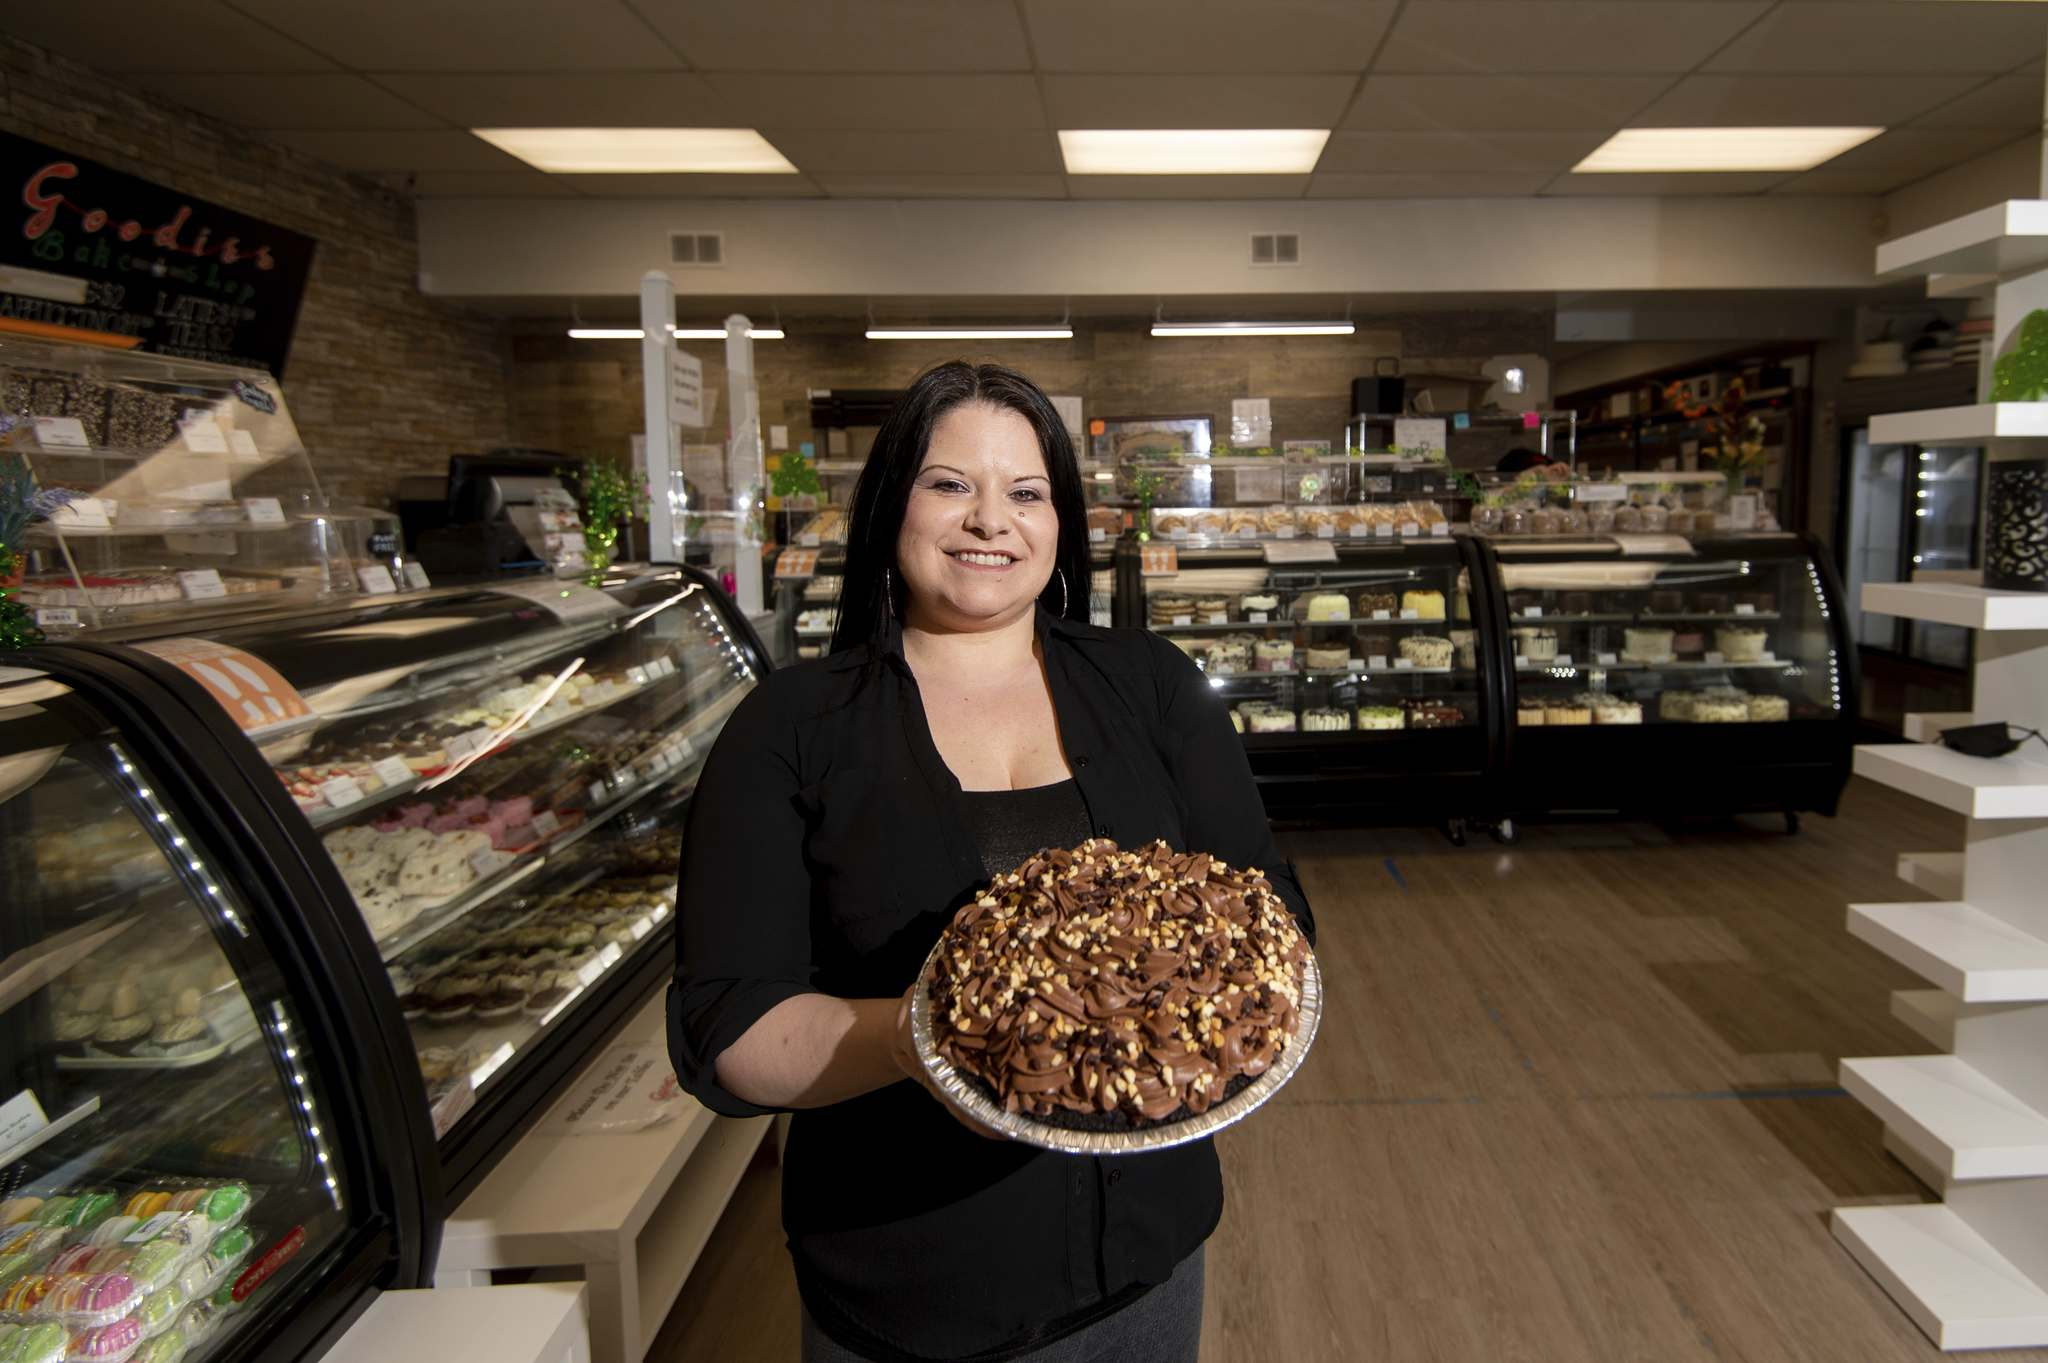 Linda Peters says Goodies Bake Shop's peanut butter chocolate mousse pie is a decked-out showstopper. (Mike Sudoma / Winnipeg Free Press)</p>